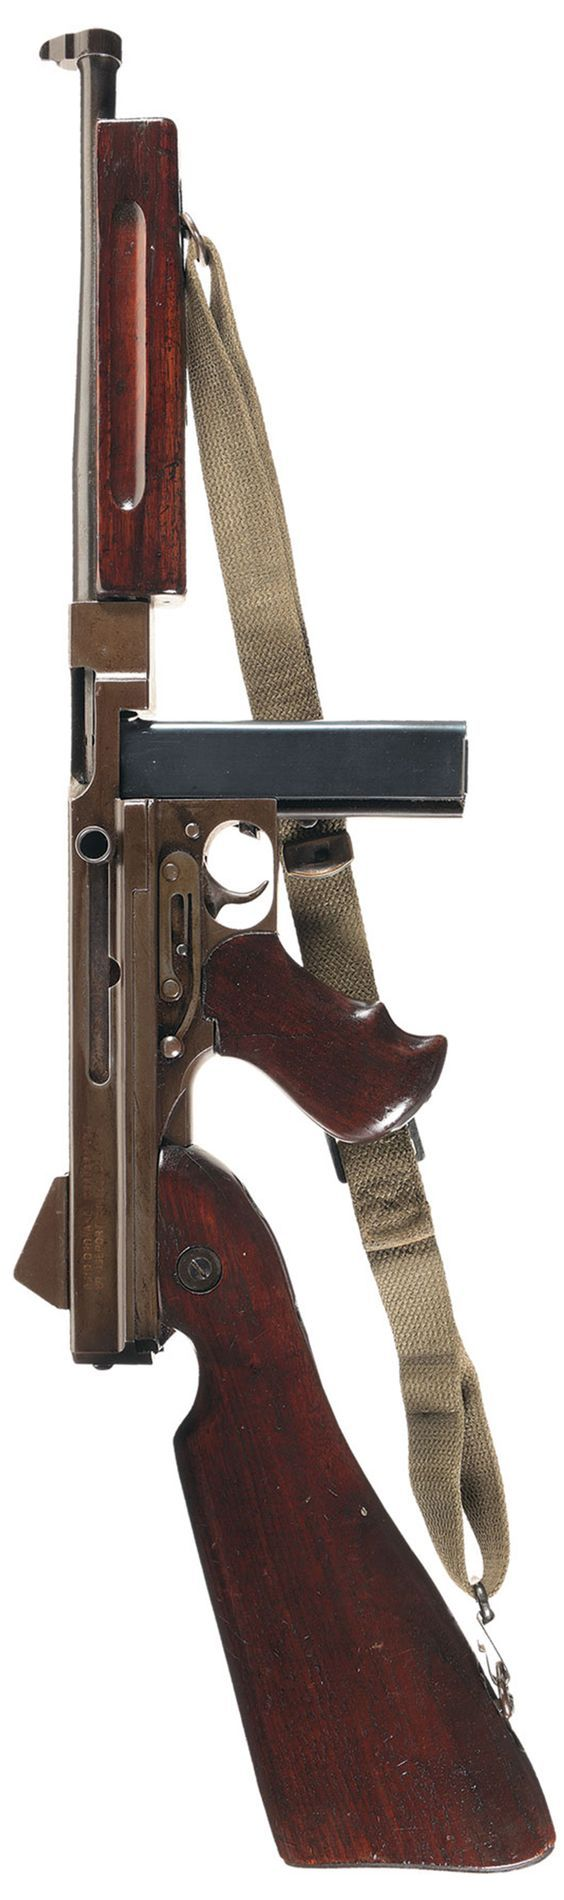 THOMPSON SUBMACHINE GUN/CALIBER 45 M1/A1/NO. 432620. AUTO ORDNANCE CORPORATION/BRIDGEPORT CONNECTICUT U.S.A.: